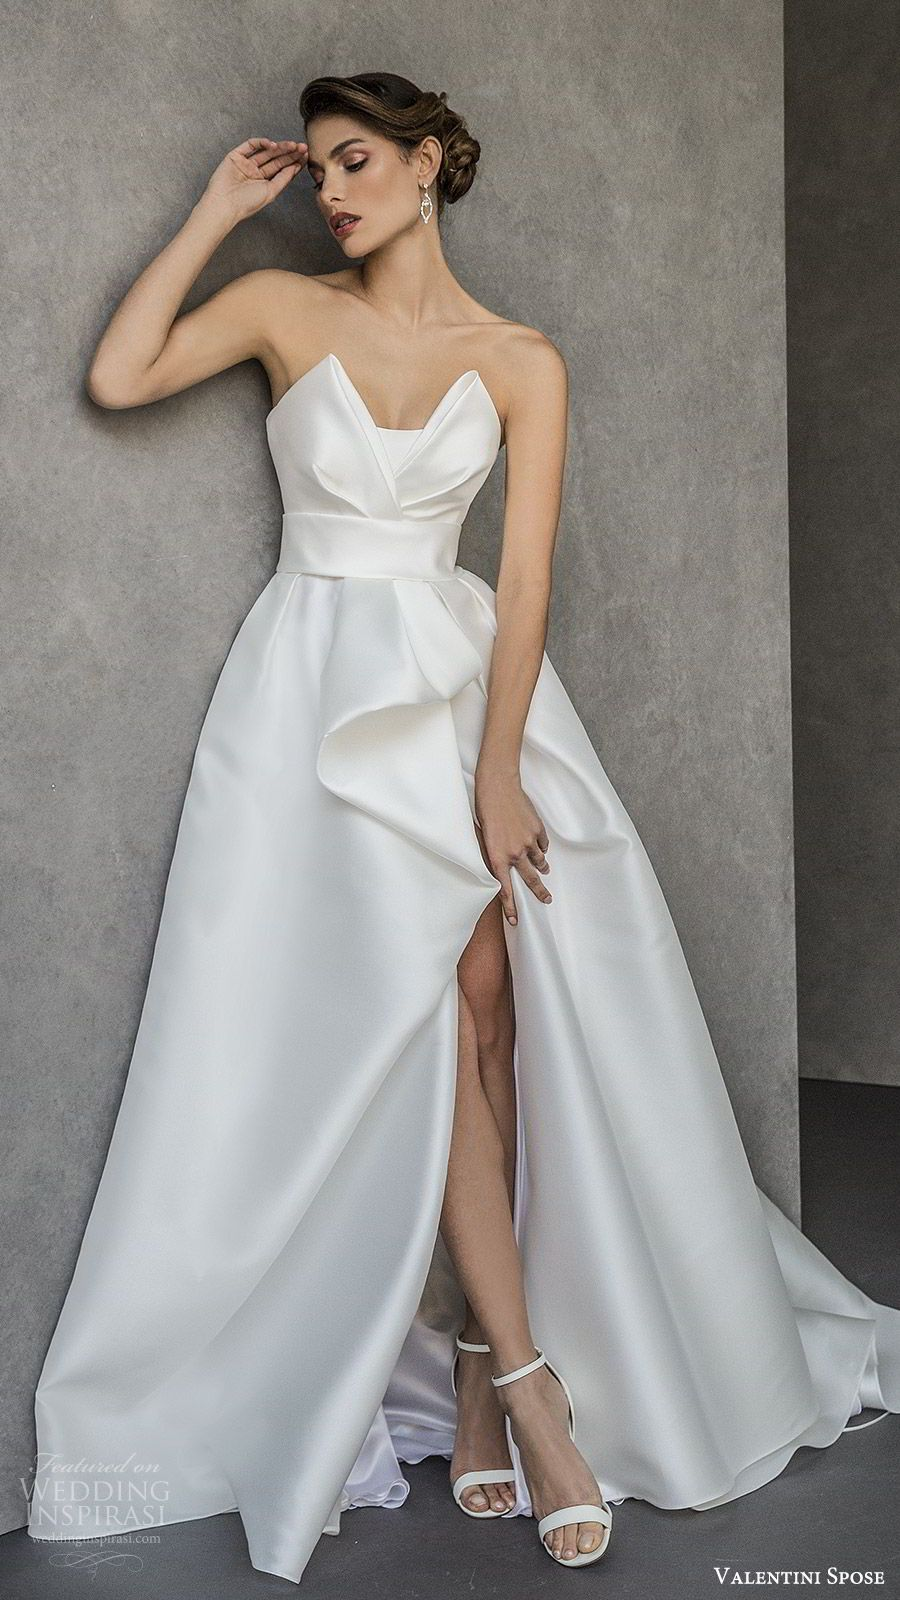 Valentini Spose Spring 2020 Wedding Dresses (With images